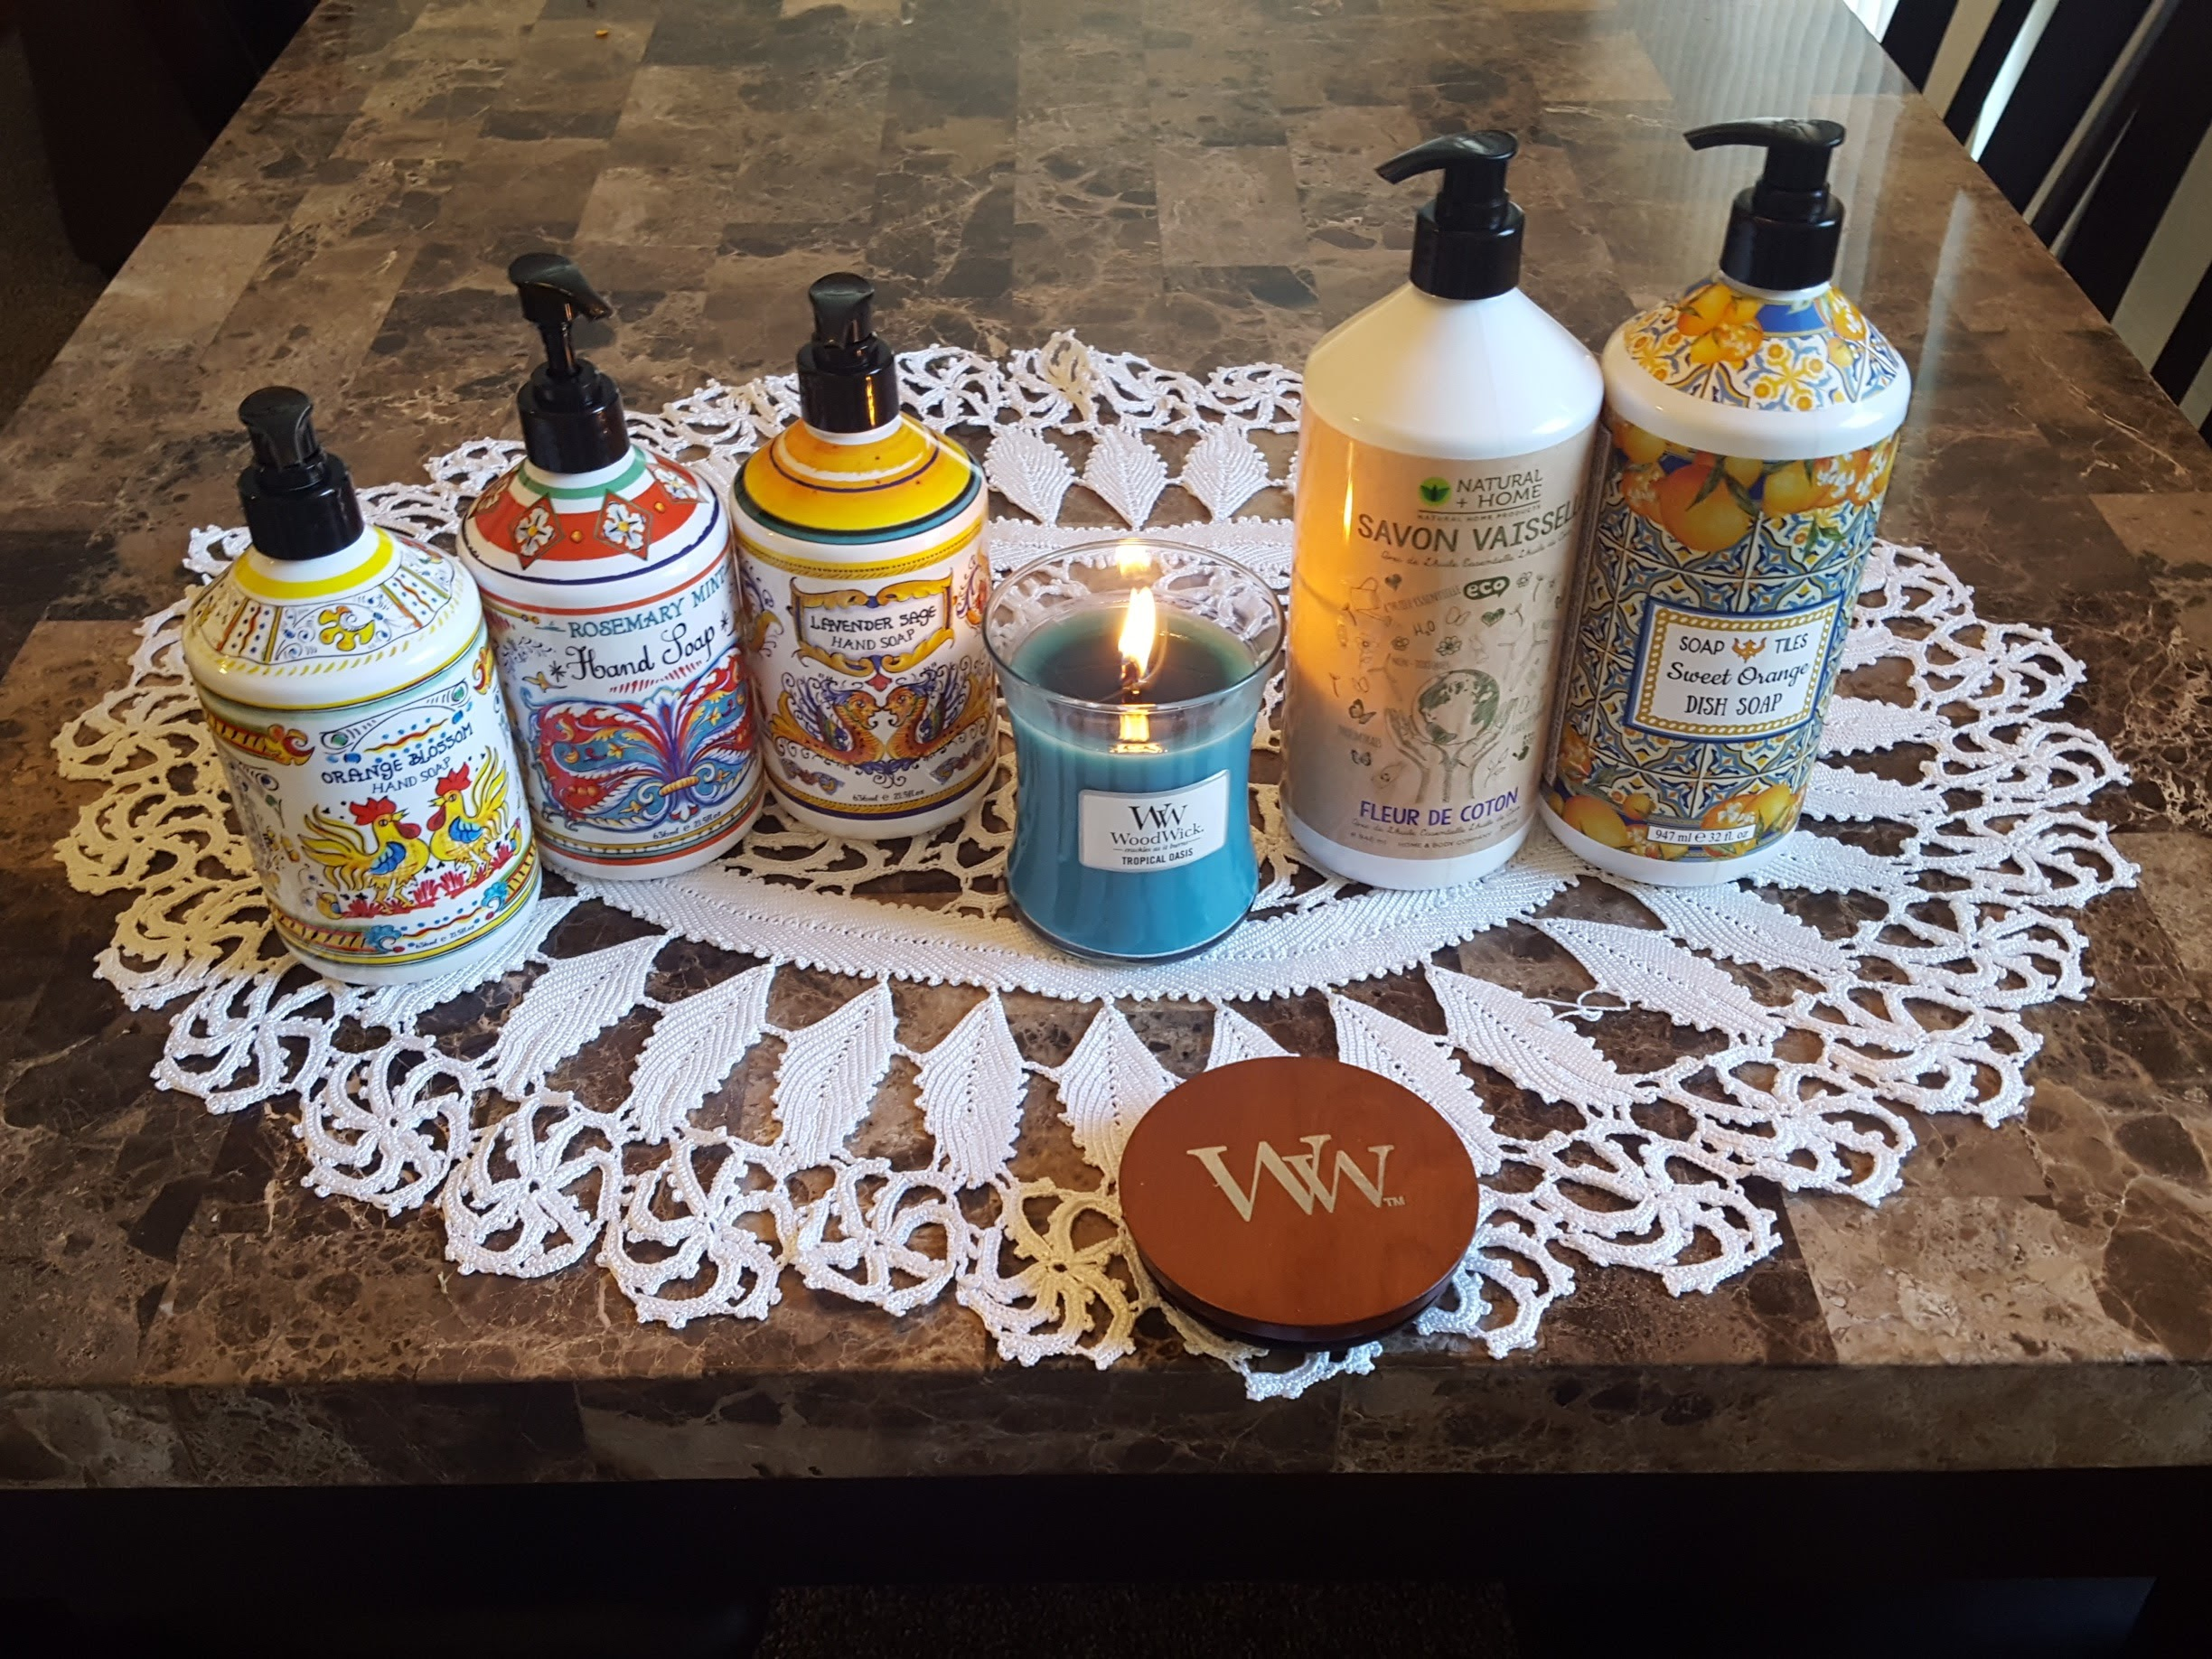 Fancy Hand Soap and Dish Liquid and Wood Wick Candle